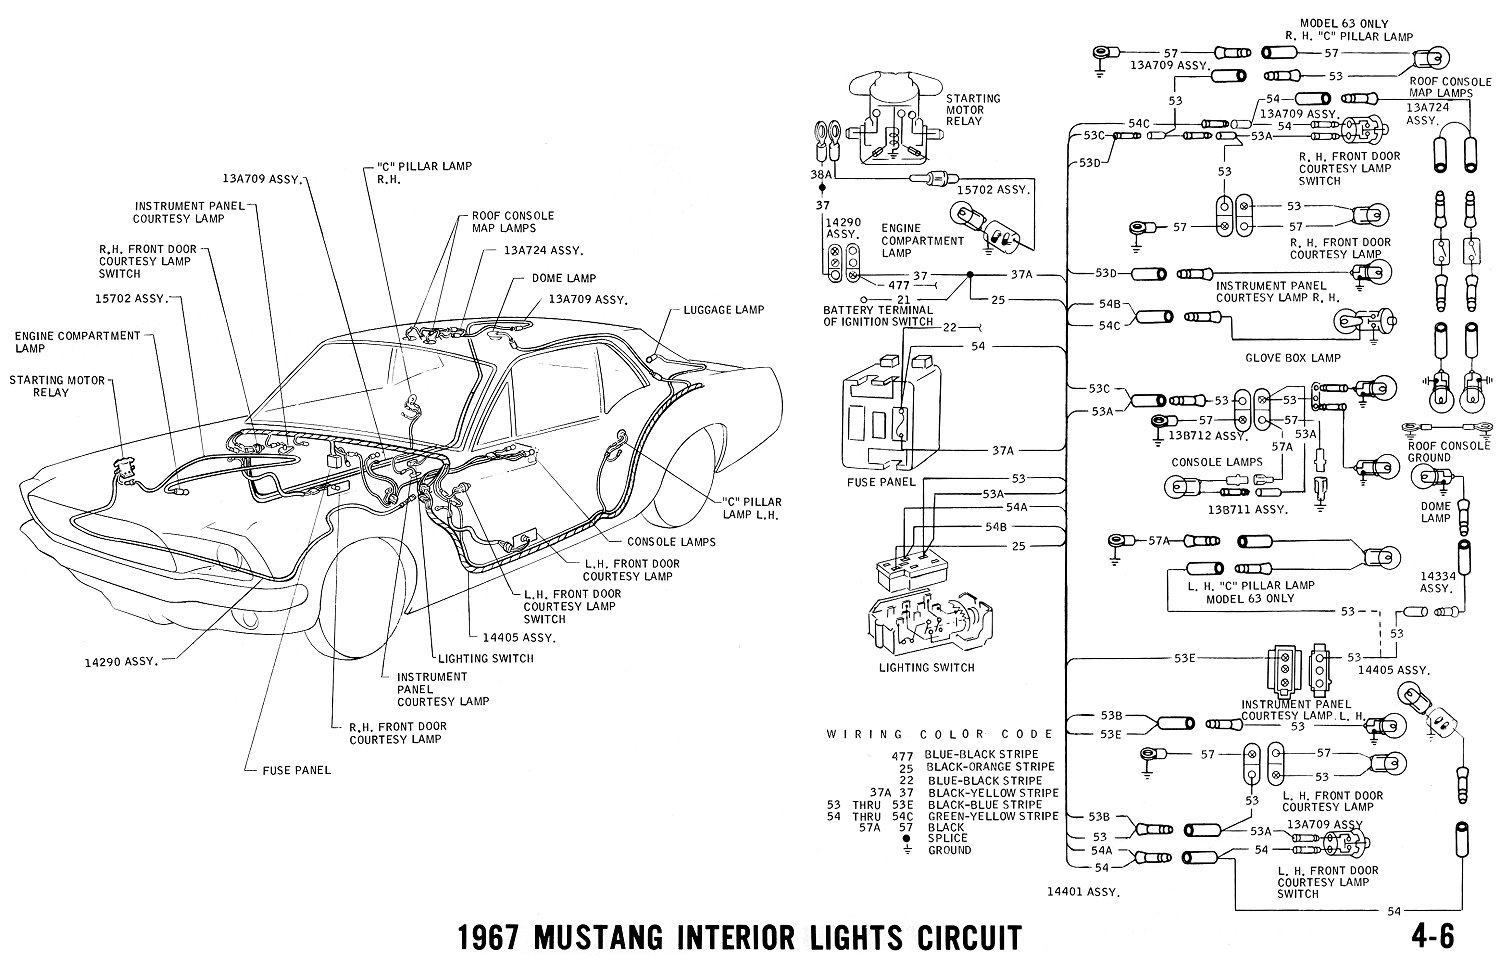 Wiring Diagram For Vacuum With Headlight from averagejoerestoration.com